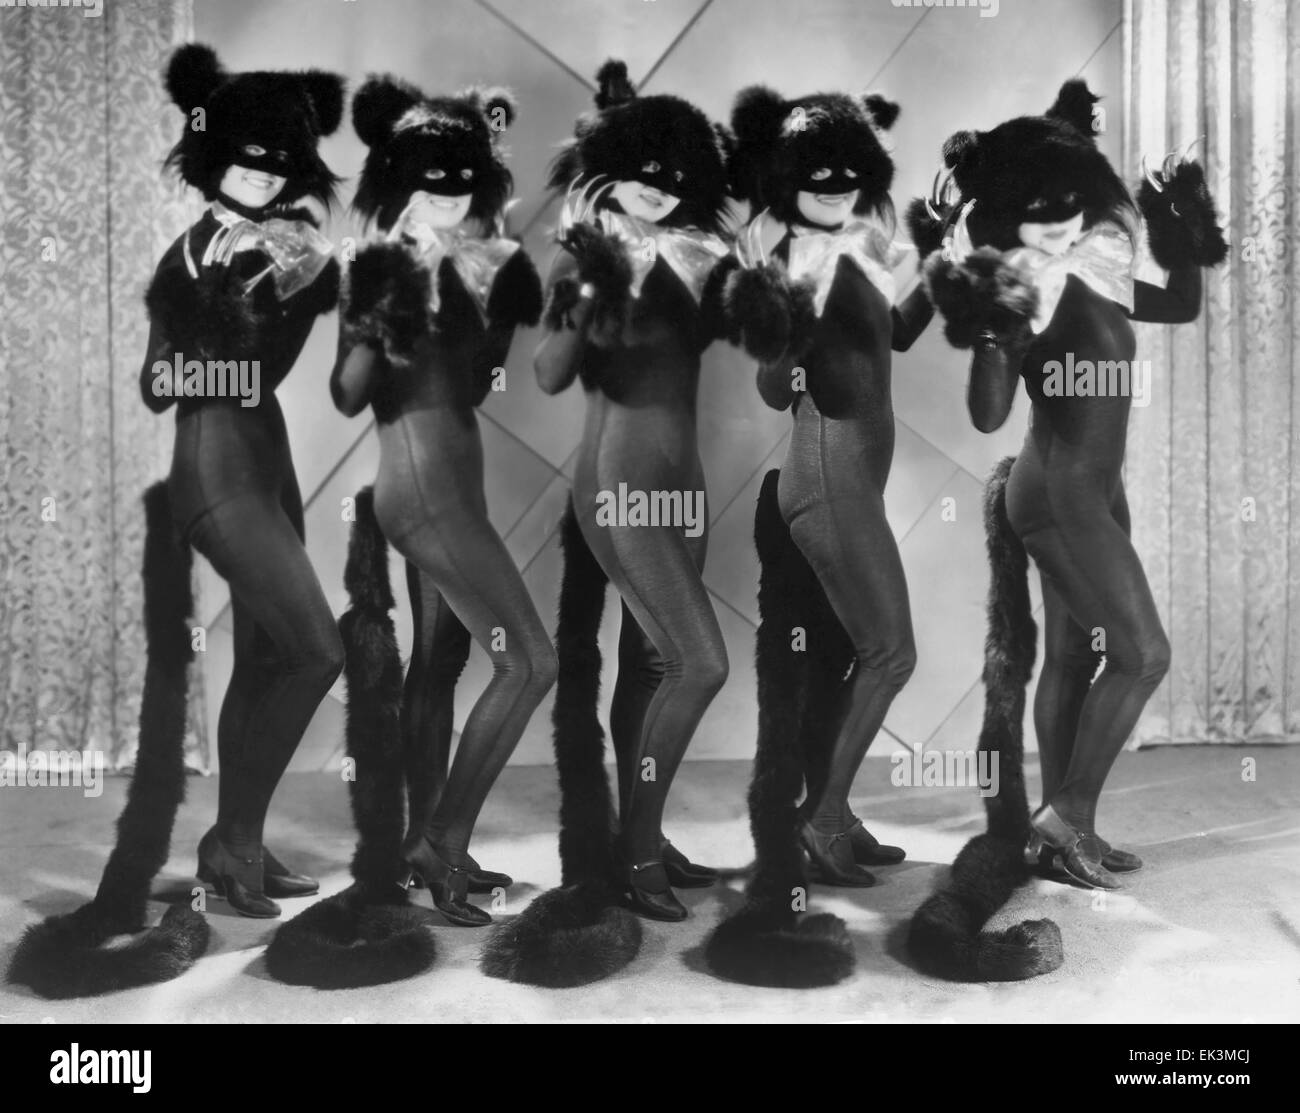 Chorus Girls in Cat Costumes  for 'Cat Walk' Routine, on-set of the Film 'Madam Satan', 1930 - Stock Image